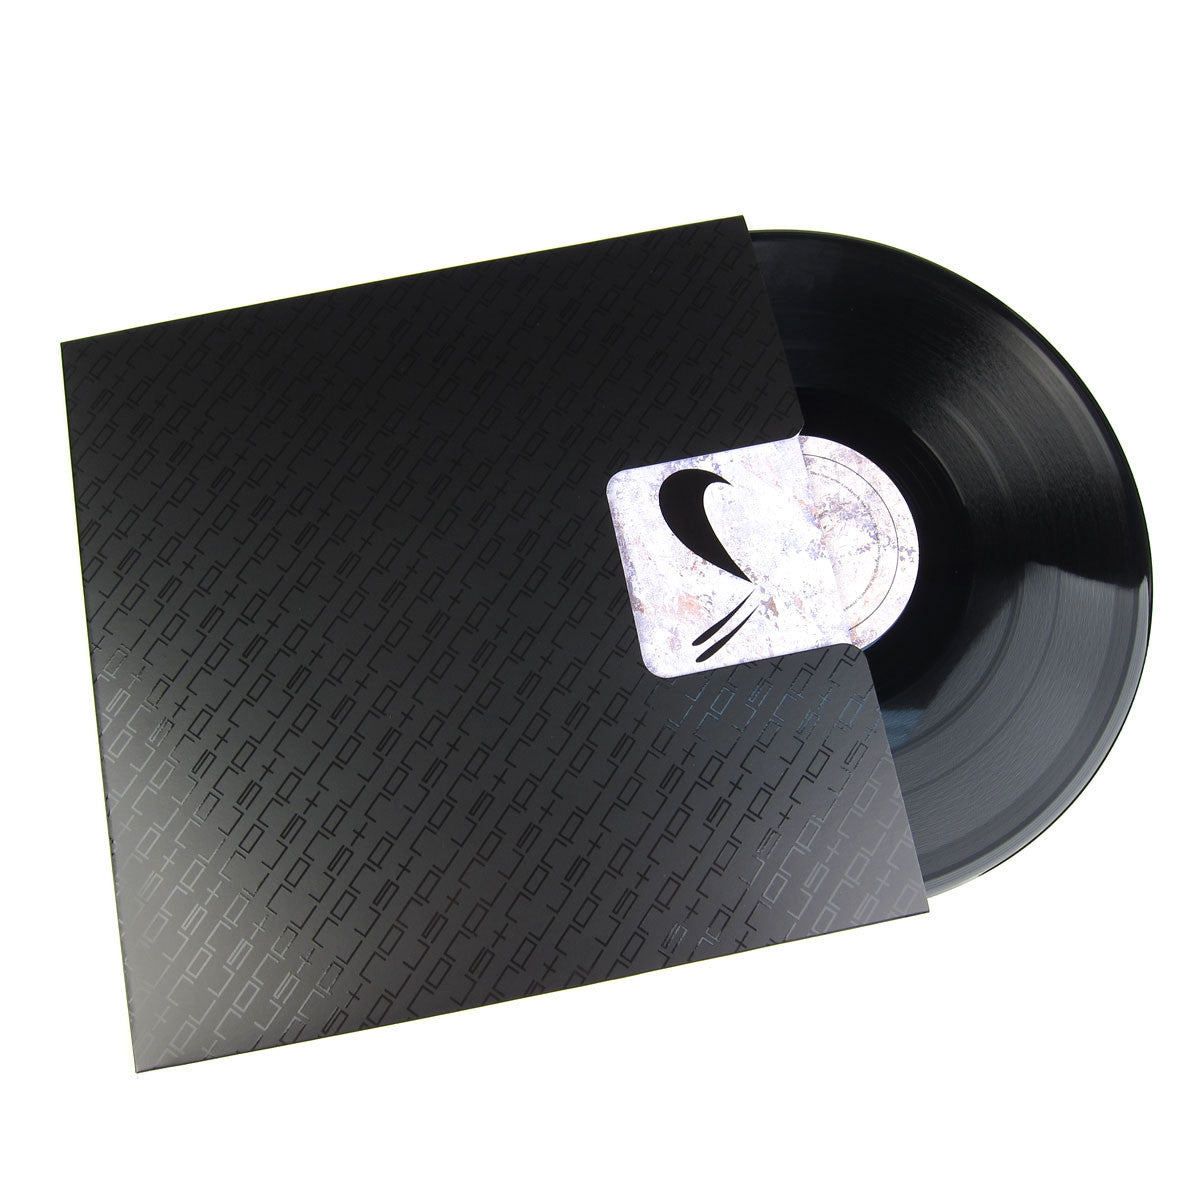 Source Direct: Black Rose (Blawan Remix) Vinyl 12""